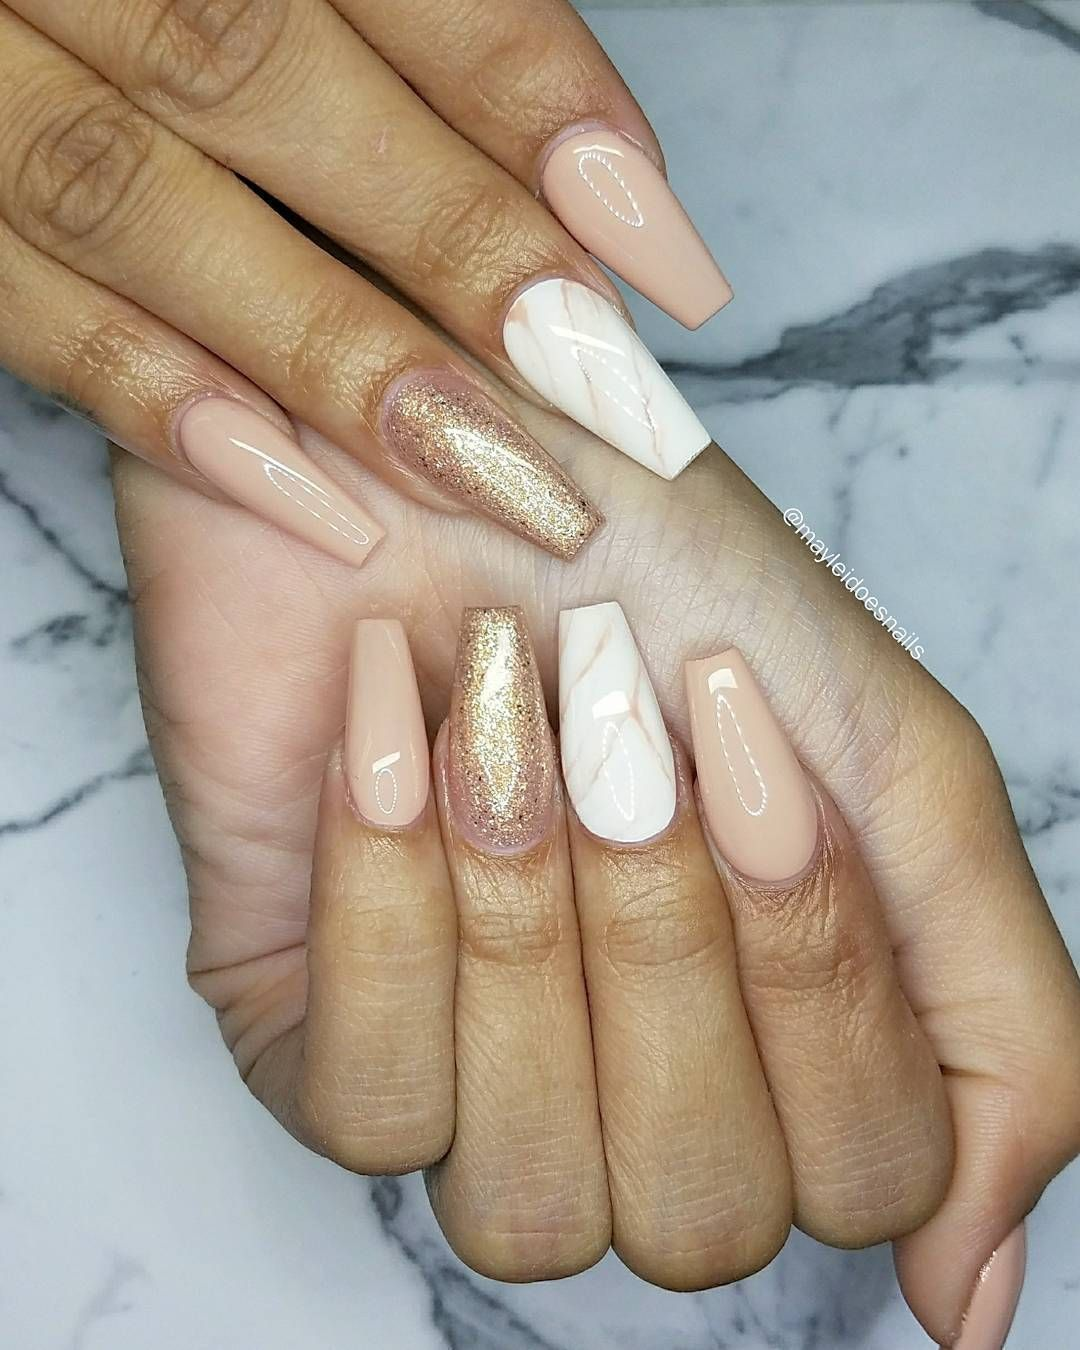 Peachy nudes coffin nail art